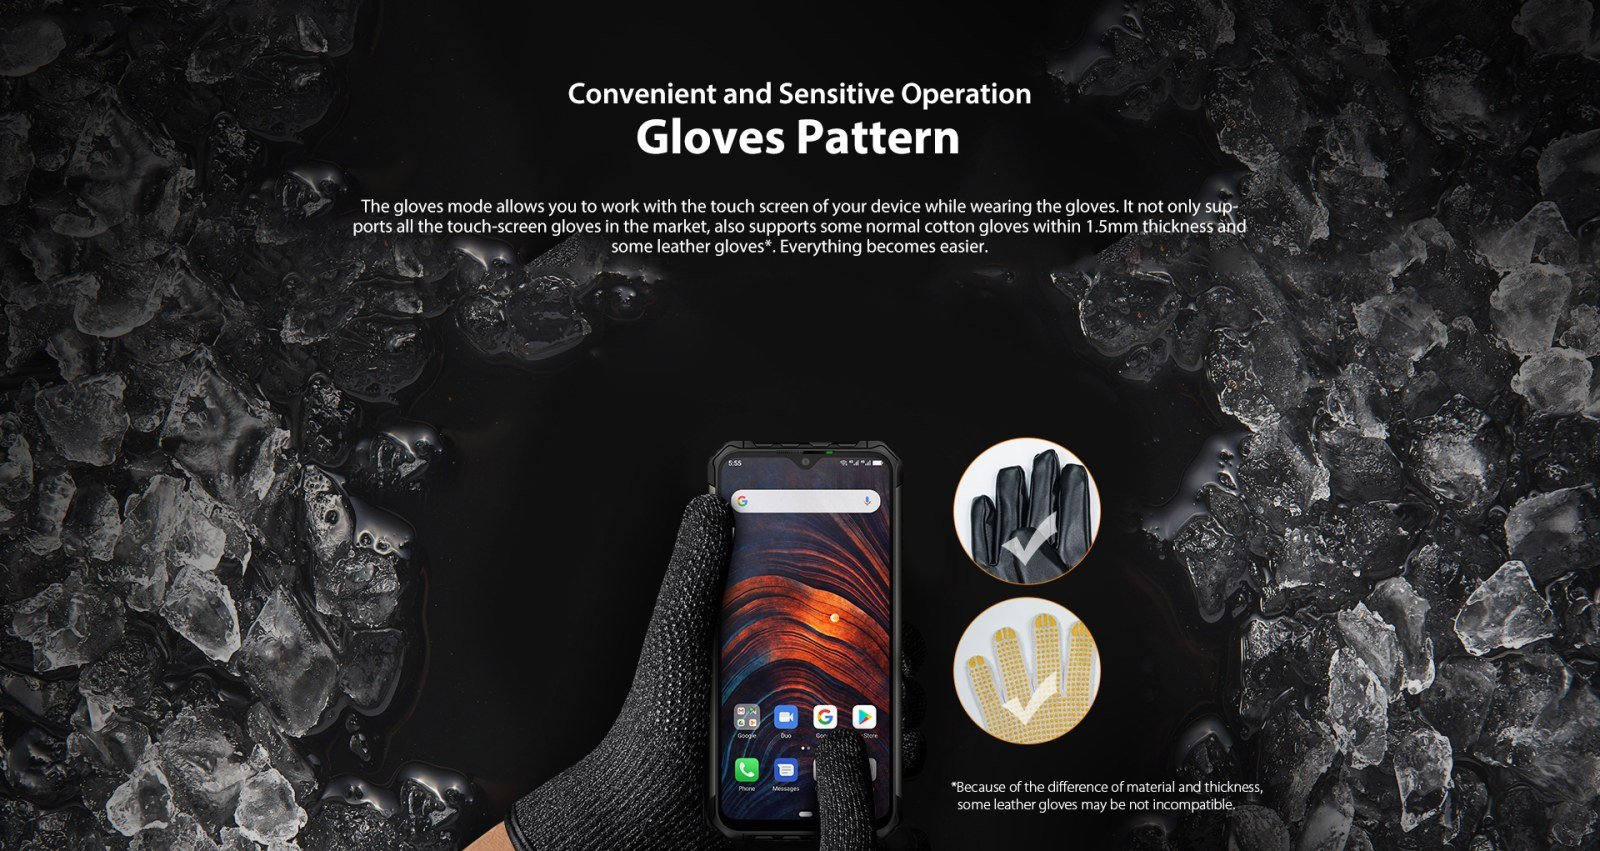 touchscreen use with gloves